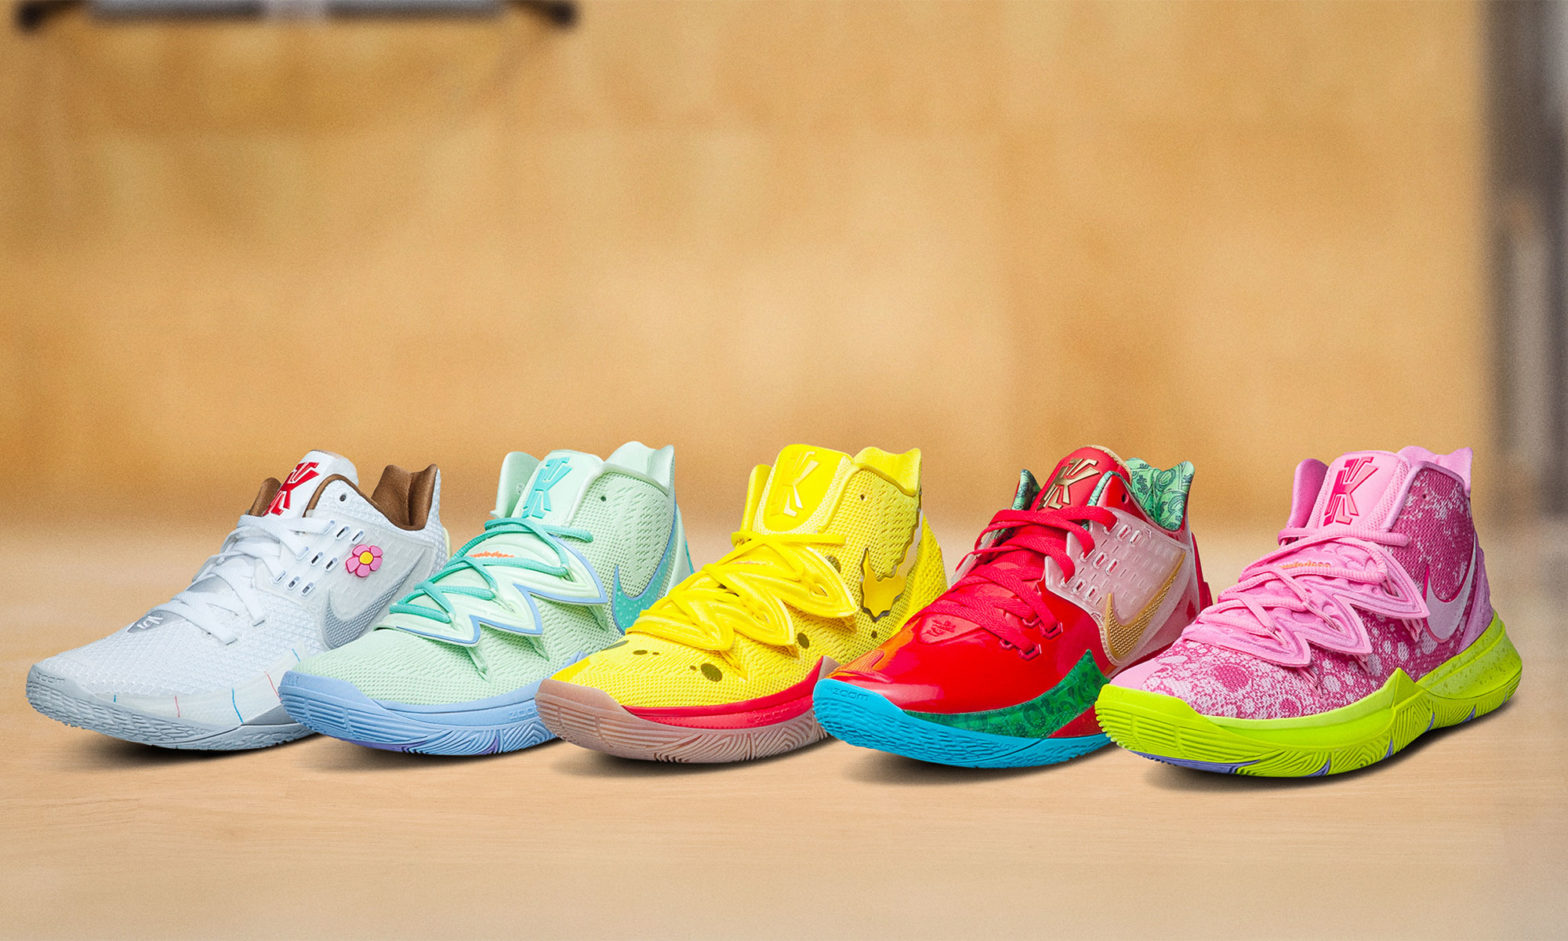 Nike Kyrie x Spongebob Squarepants Collection